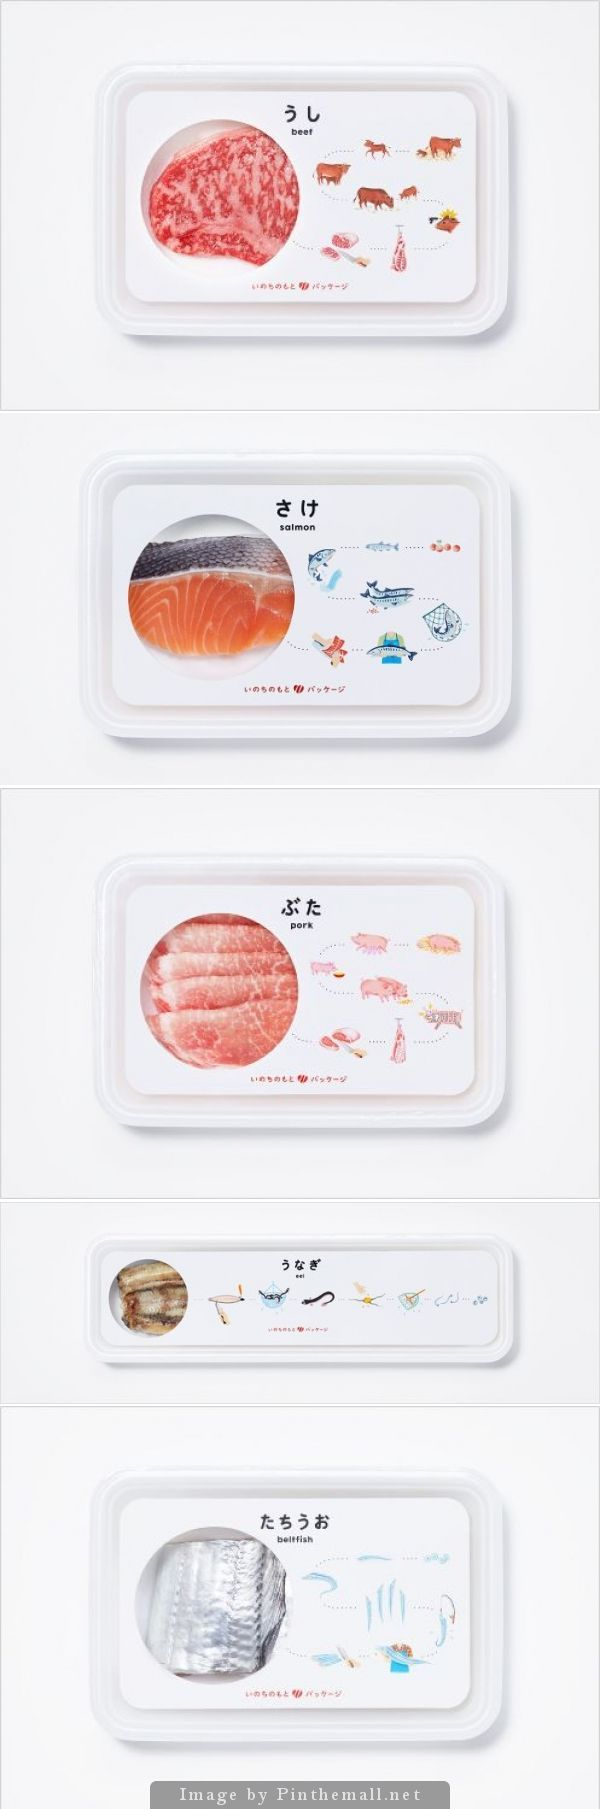 Look at the details on this #packaging it's fabulous.